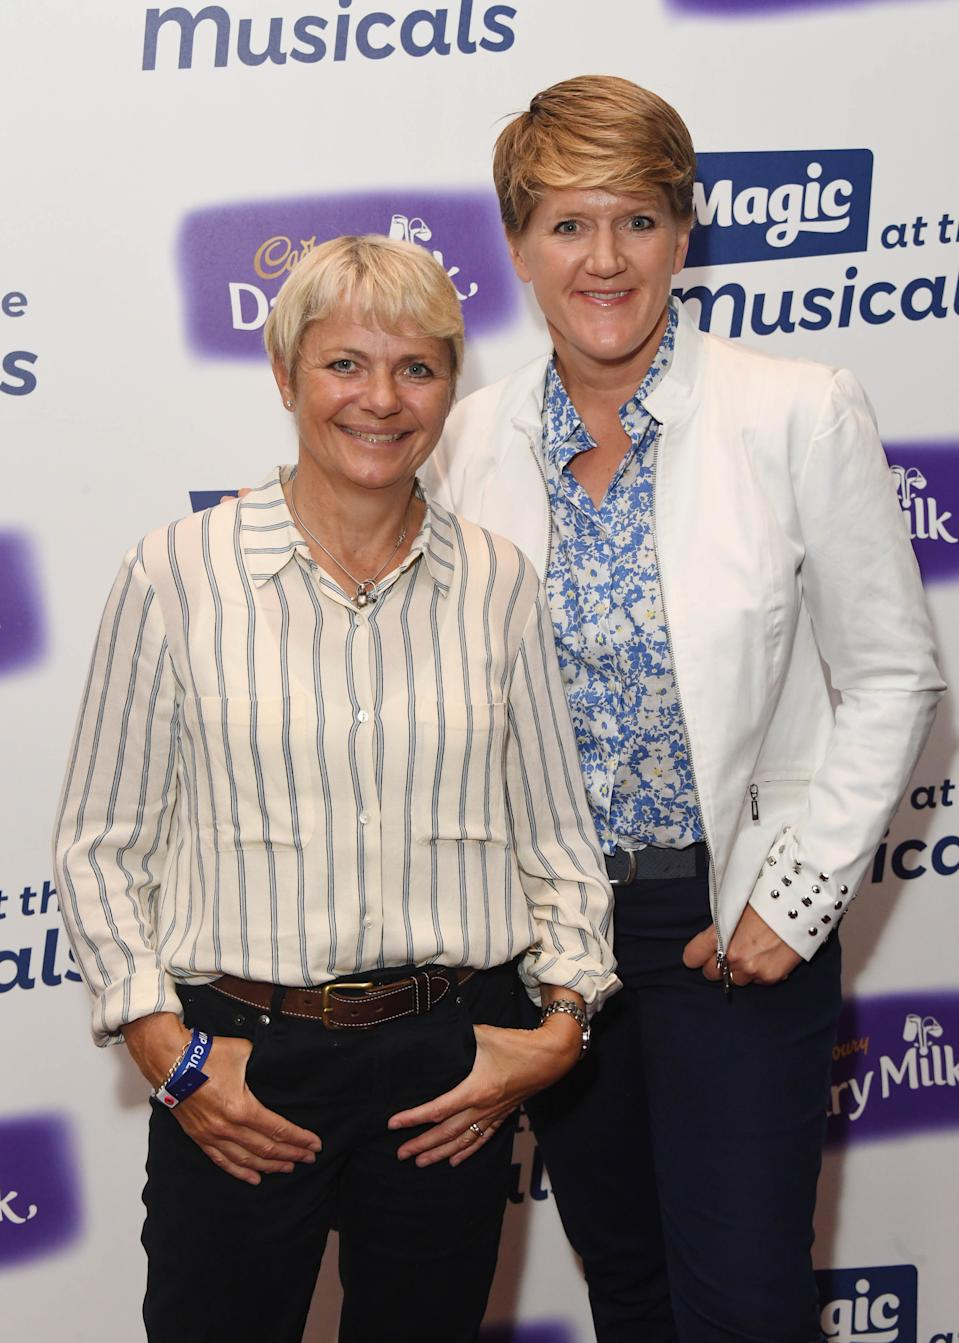 LONDON, ENGLAND - MAY 21:  Alice Arnold and Clare Balding attend Magic Radio's event 'Magic At The Musicals' held at Royal Albert Hall on May 21, 2018 in London, England.  (Photo by Stuart C. Wilson/Getty Images)